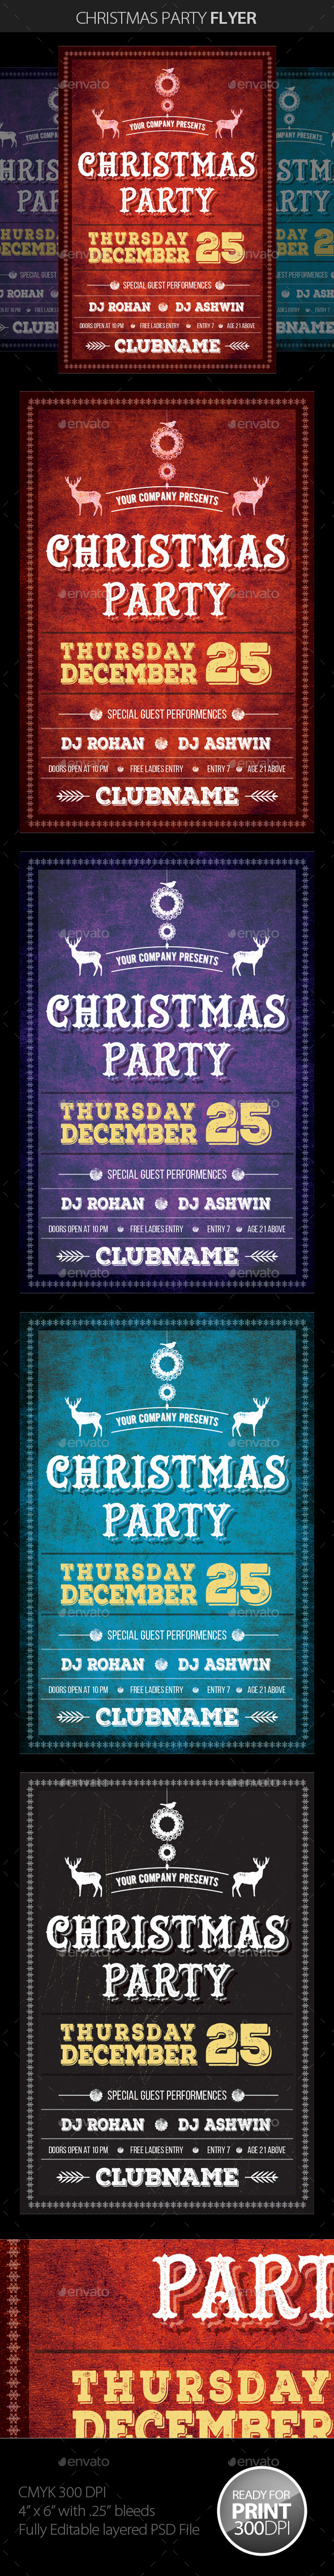 GraphicRiver Christmas Party Flyer 9431204